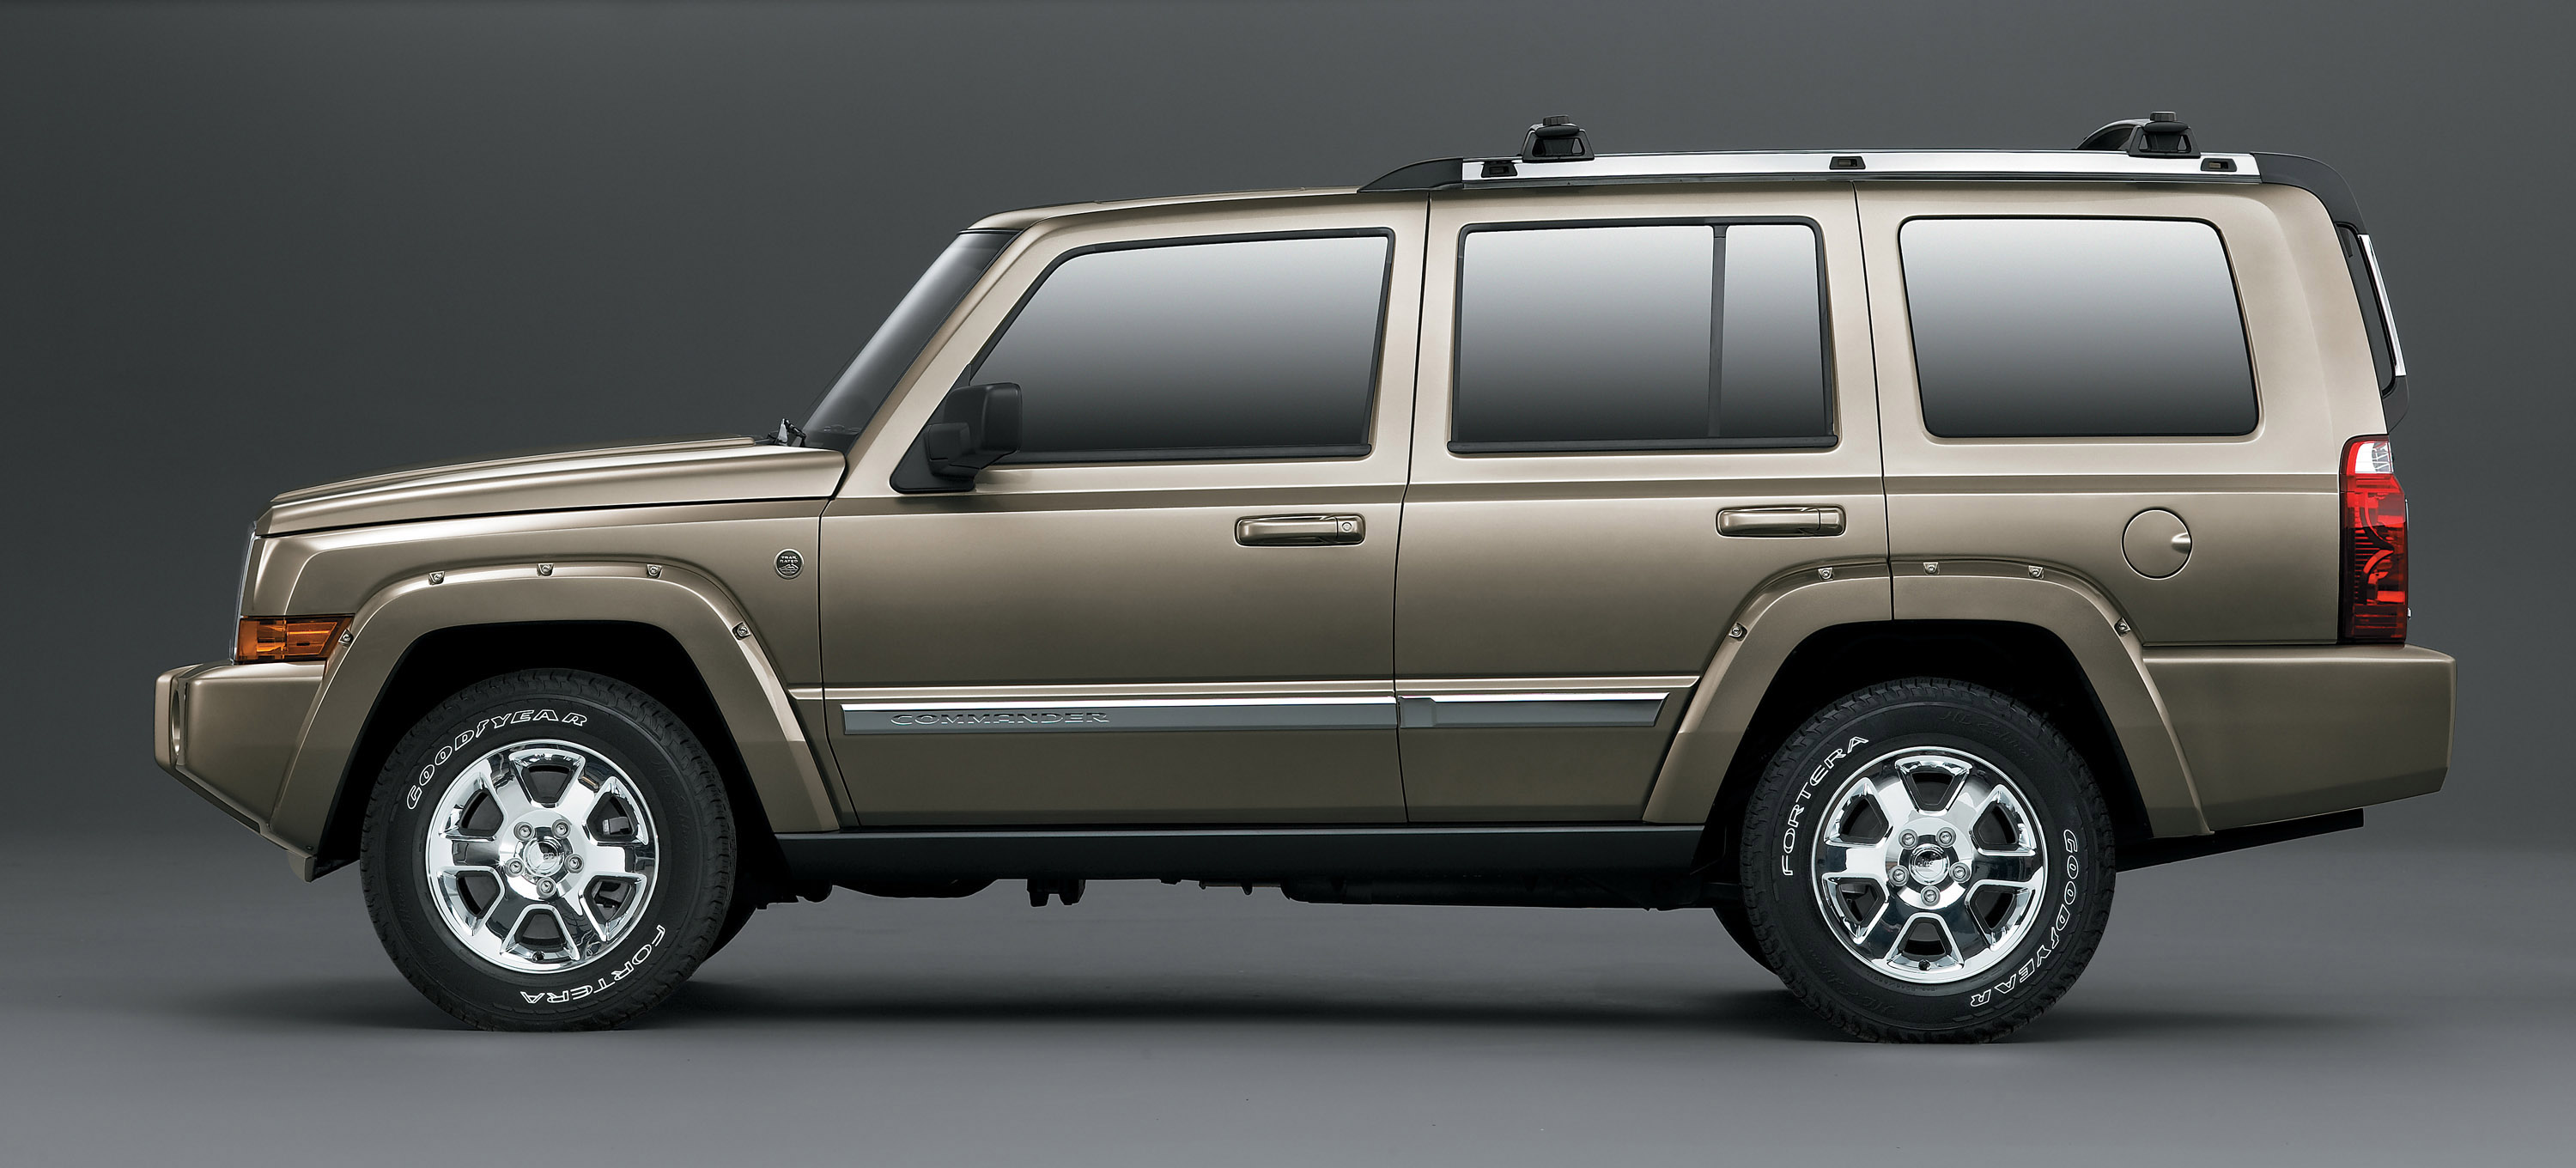 2006 jeep commander 4x4 limited 5.7 hemi - hd pictures